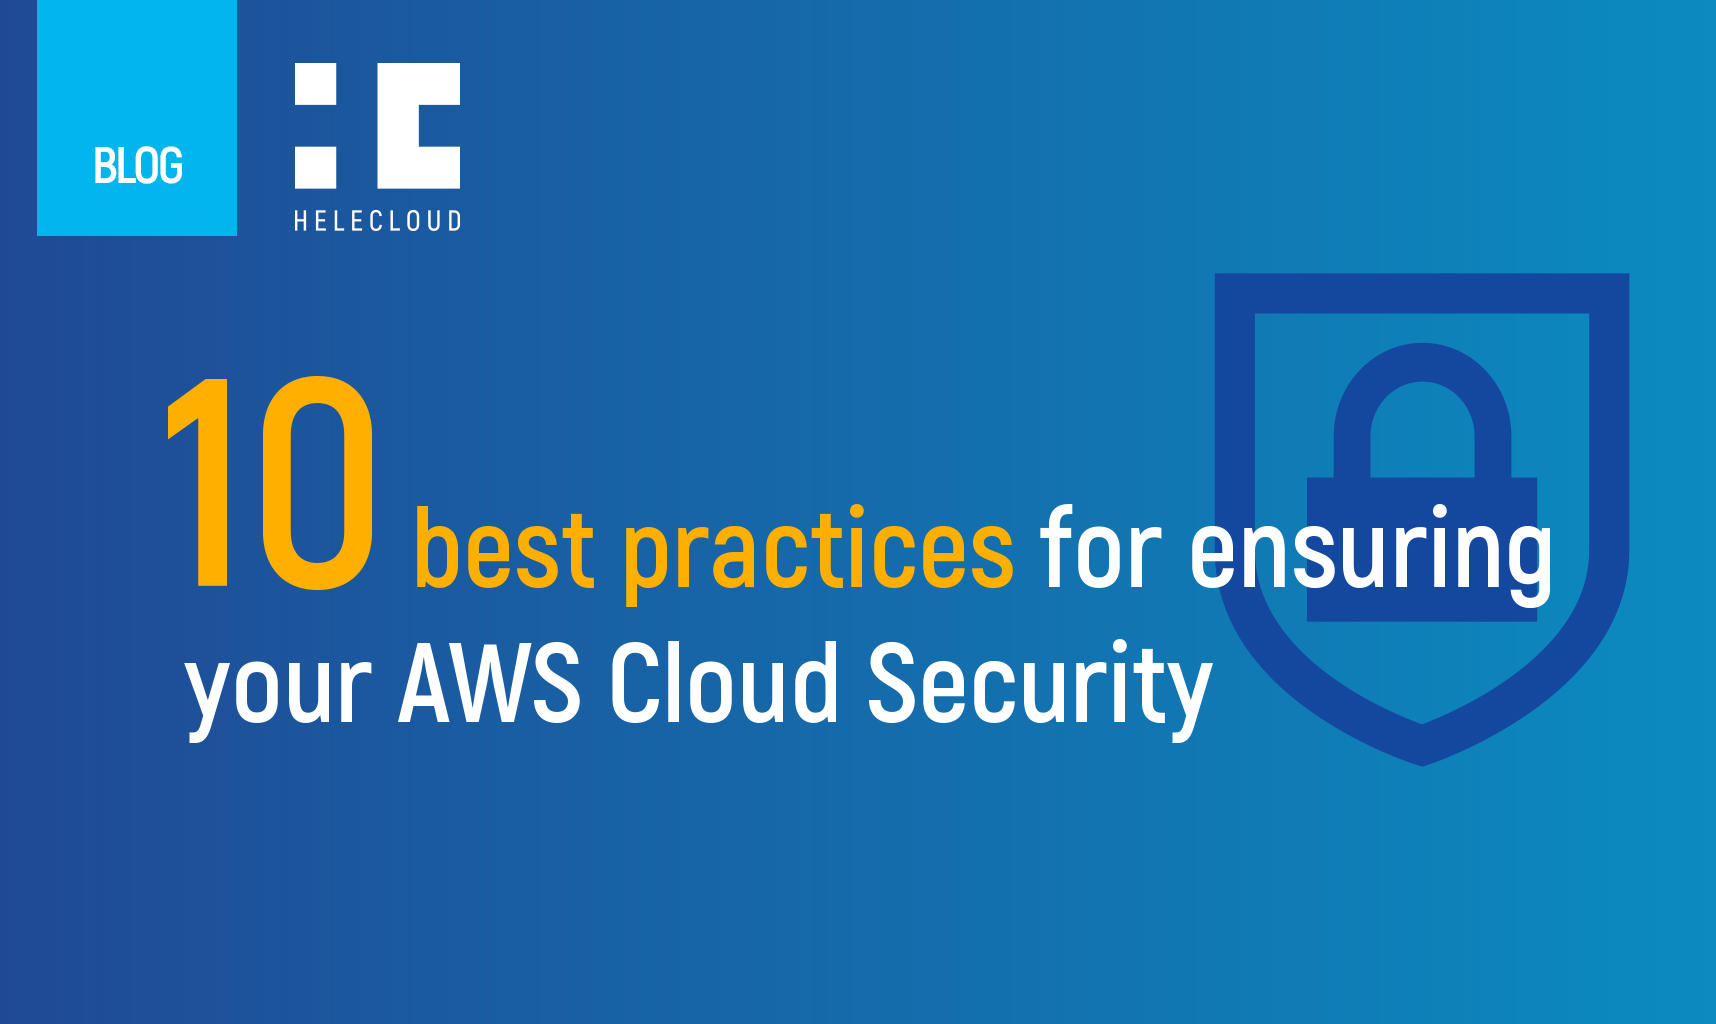 10 best practices for ensuring your AWS Cloud Security